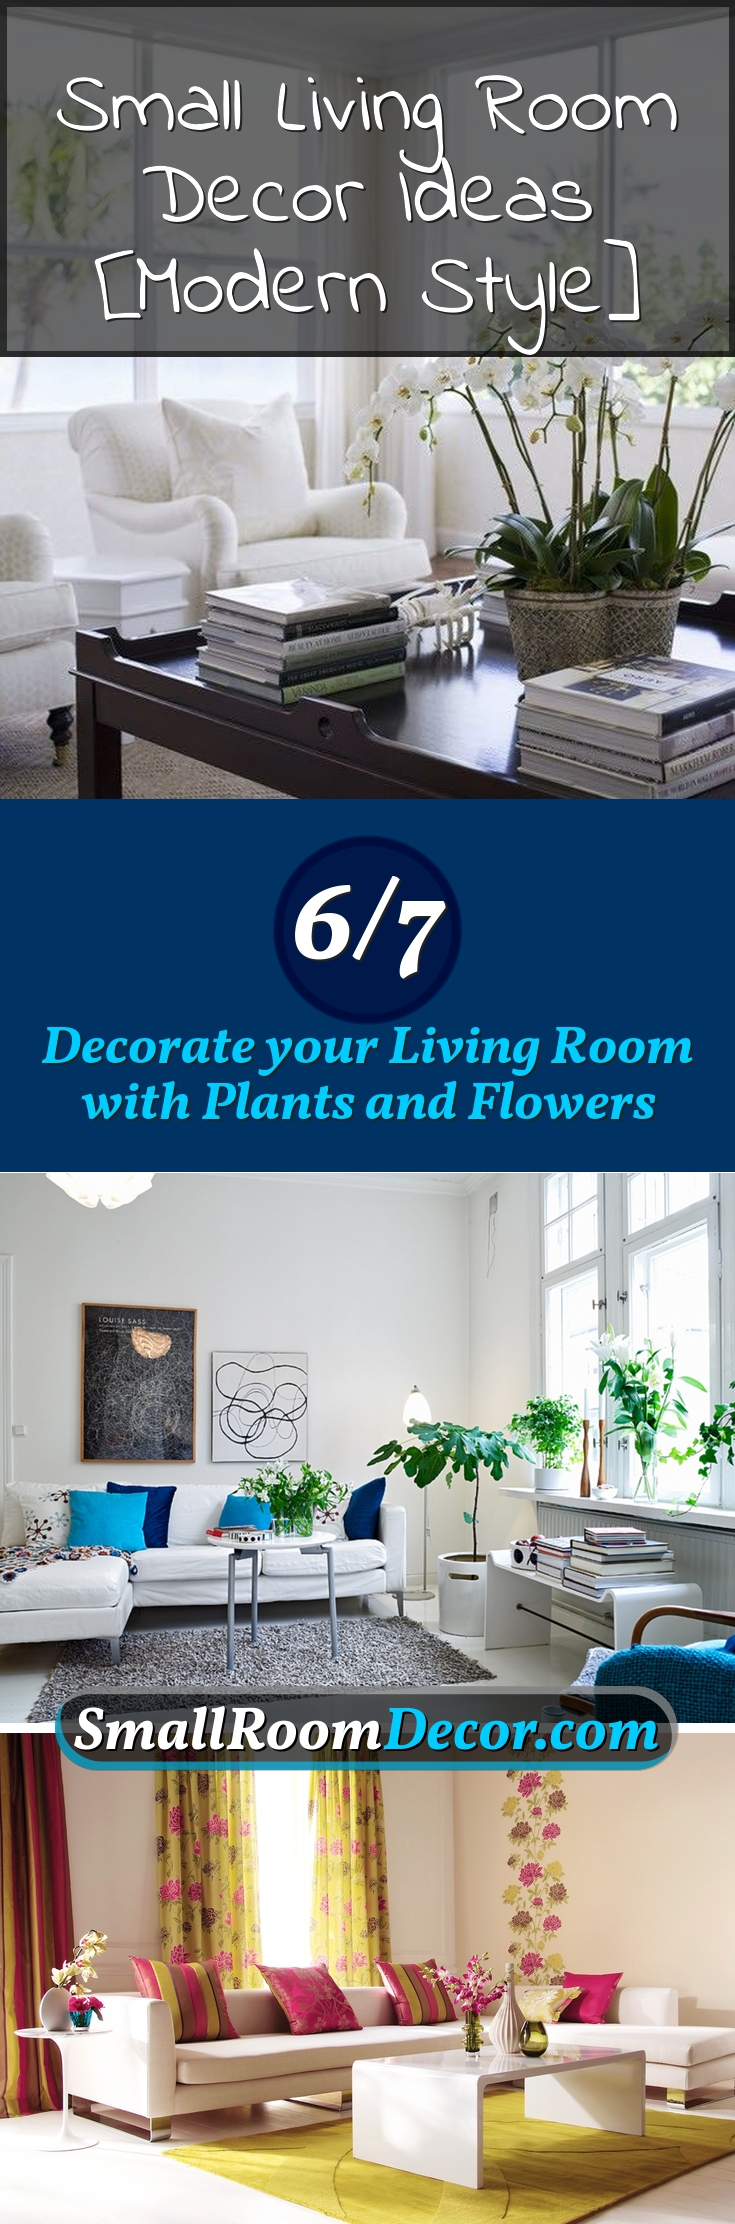 #flowers in #livingroommodern